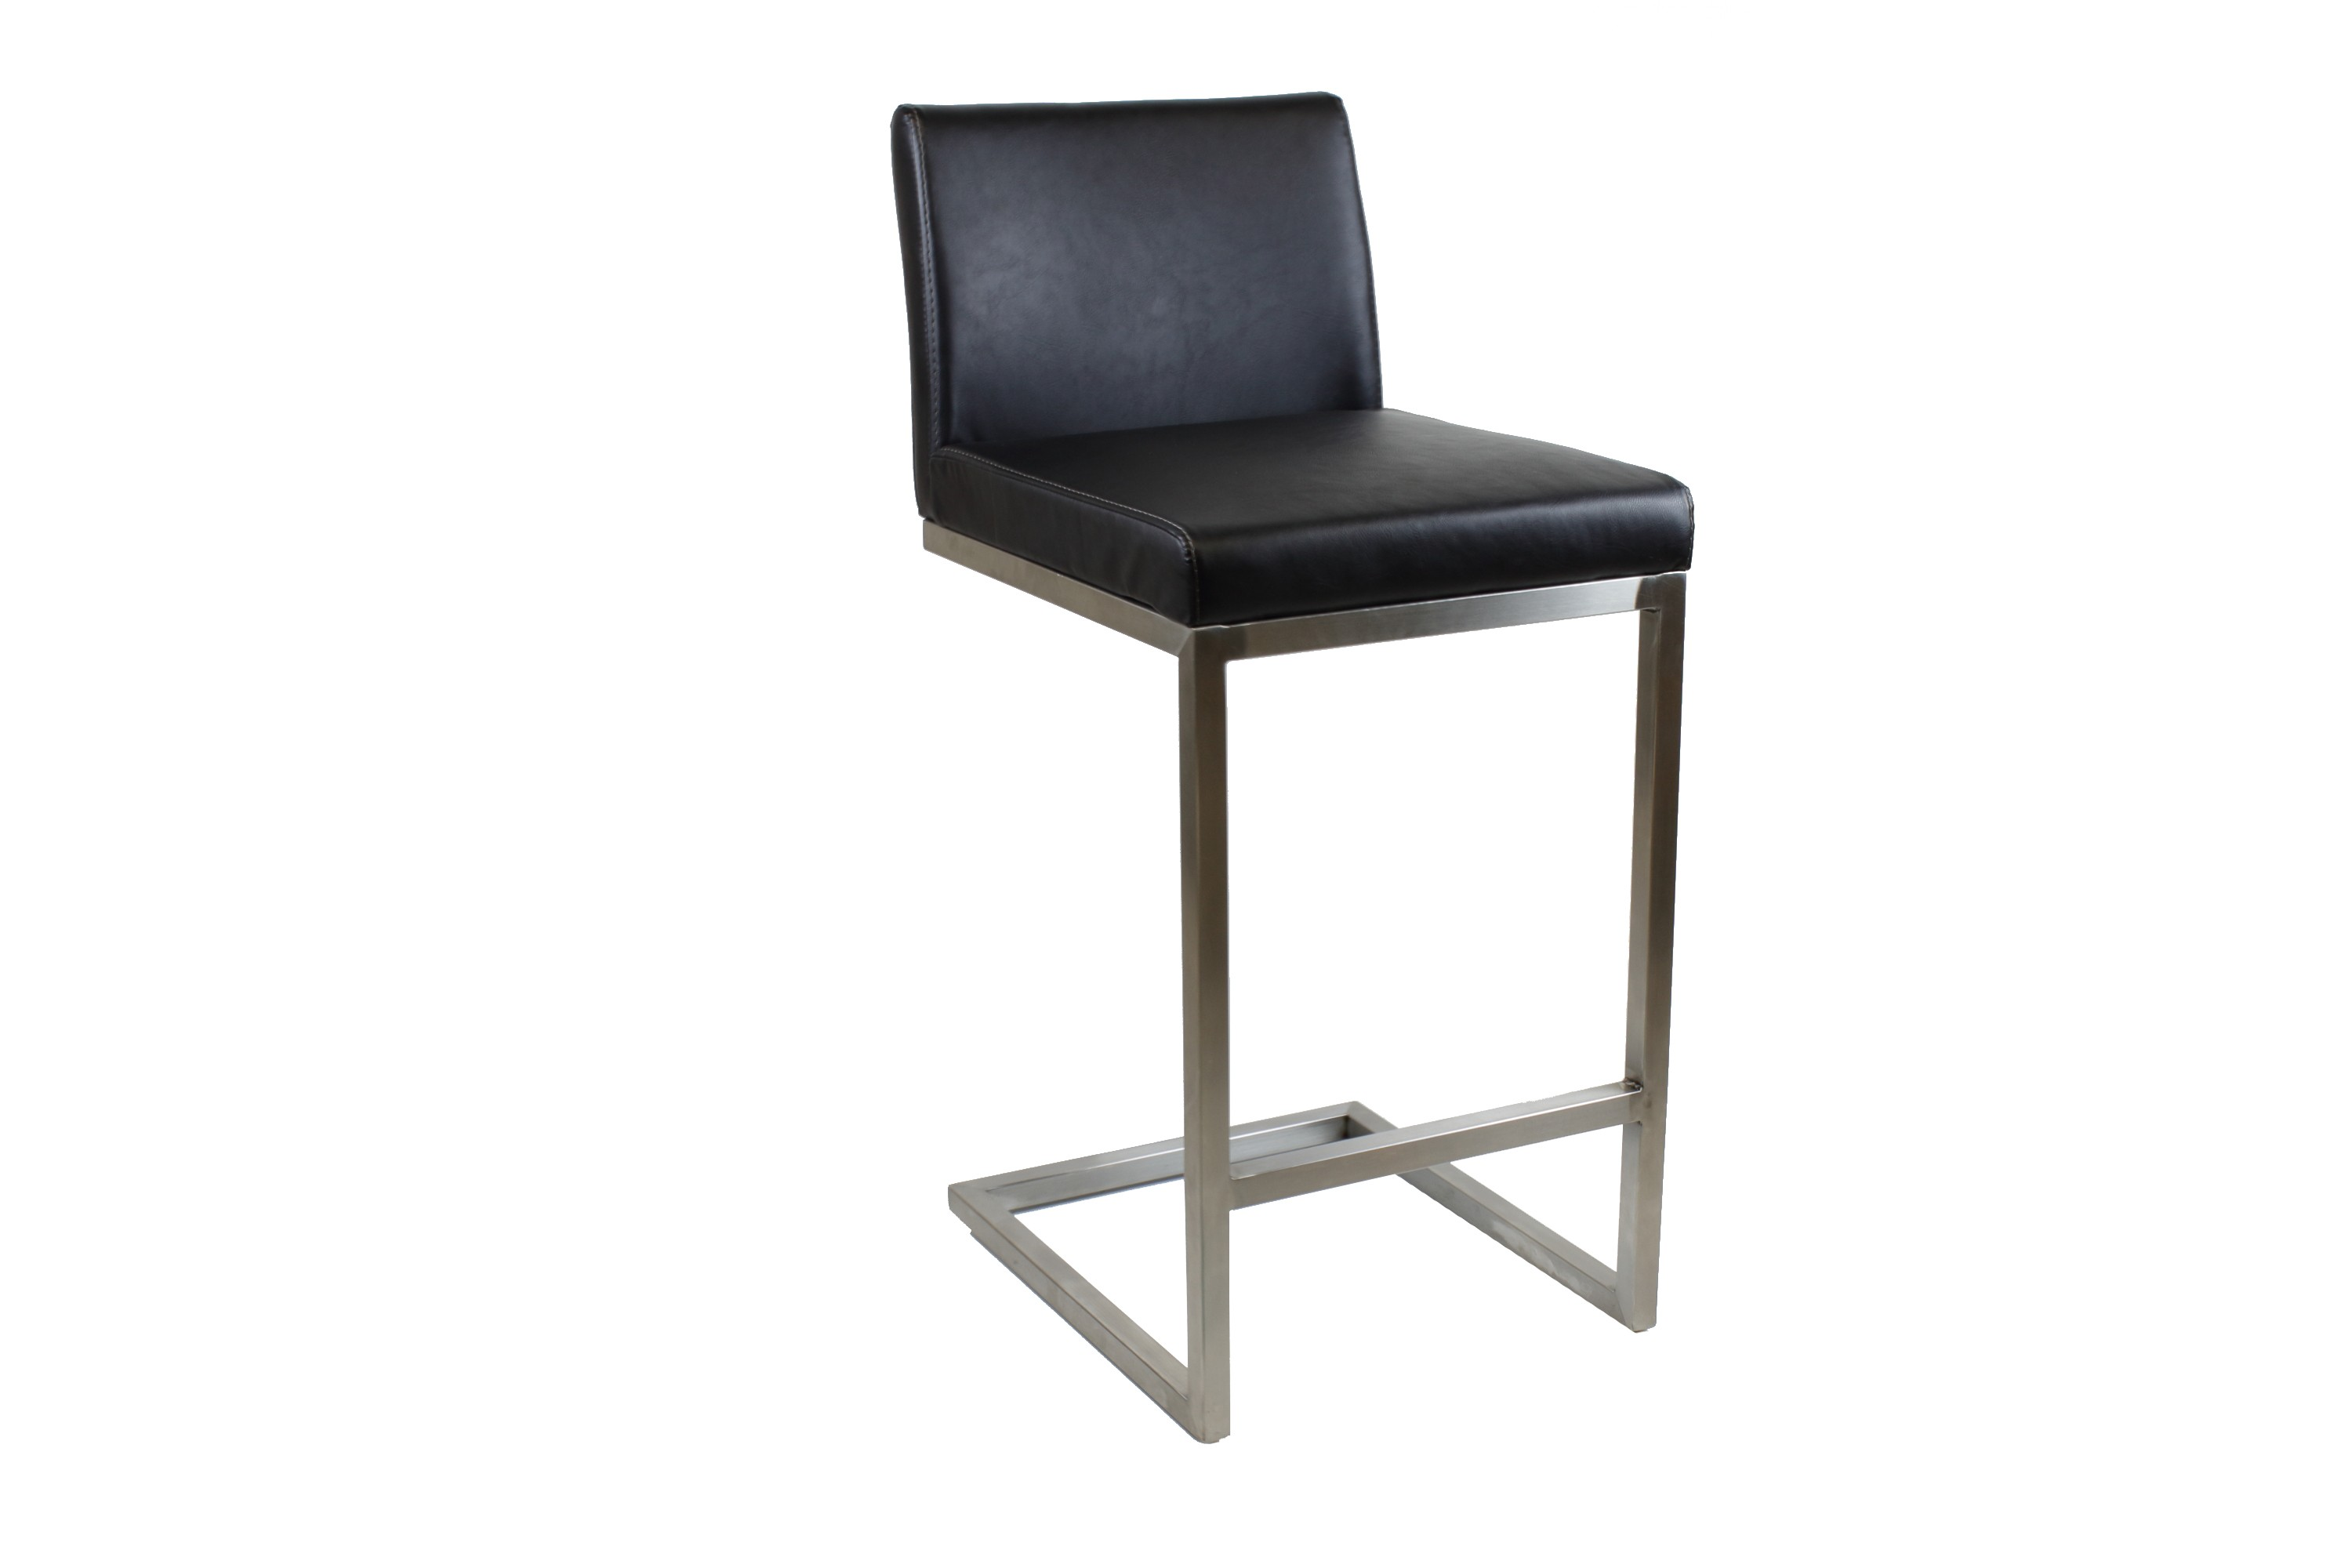 tabouret de bar haut de gamme meuble haut bar tabouret mobilier bar haut de gamme with tabouret. Black Bedroom Furniture Sets. Home Design Ideas